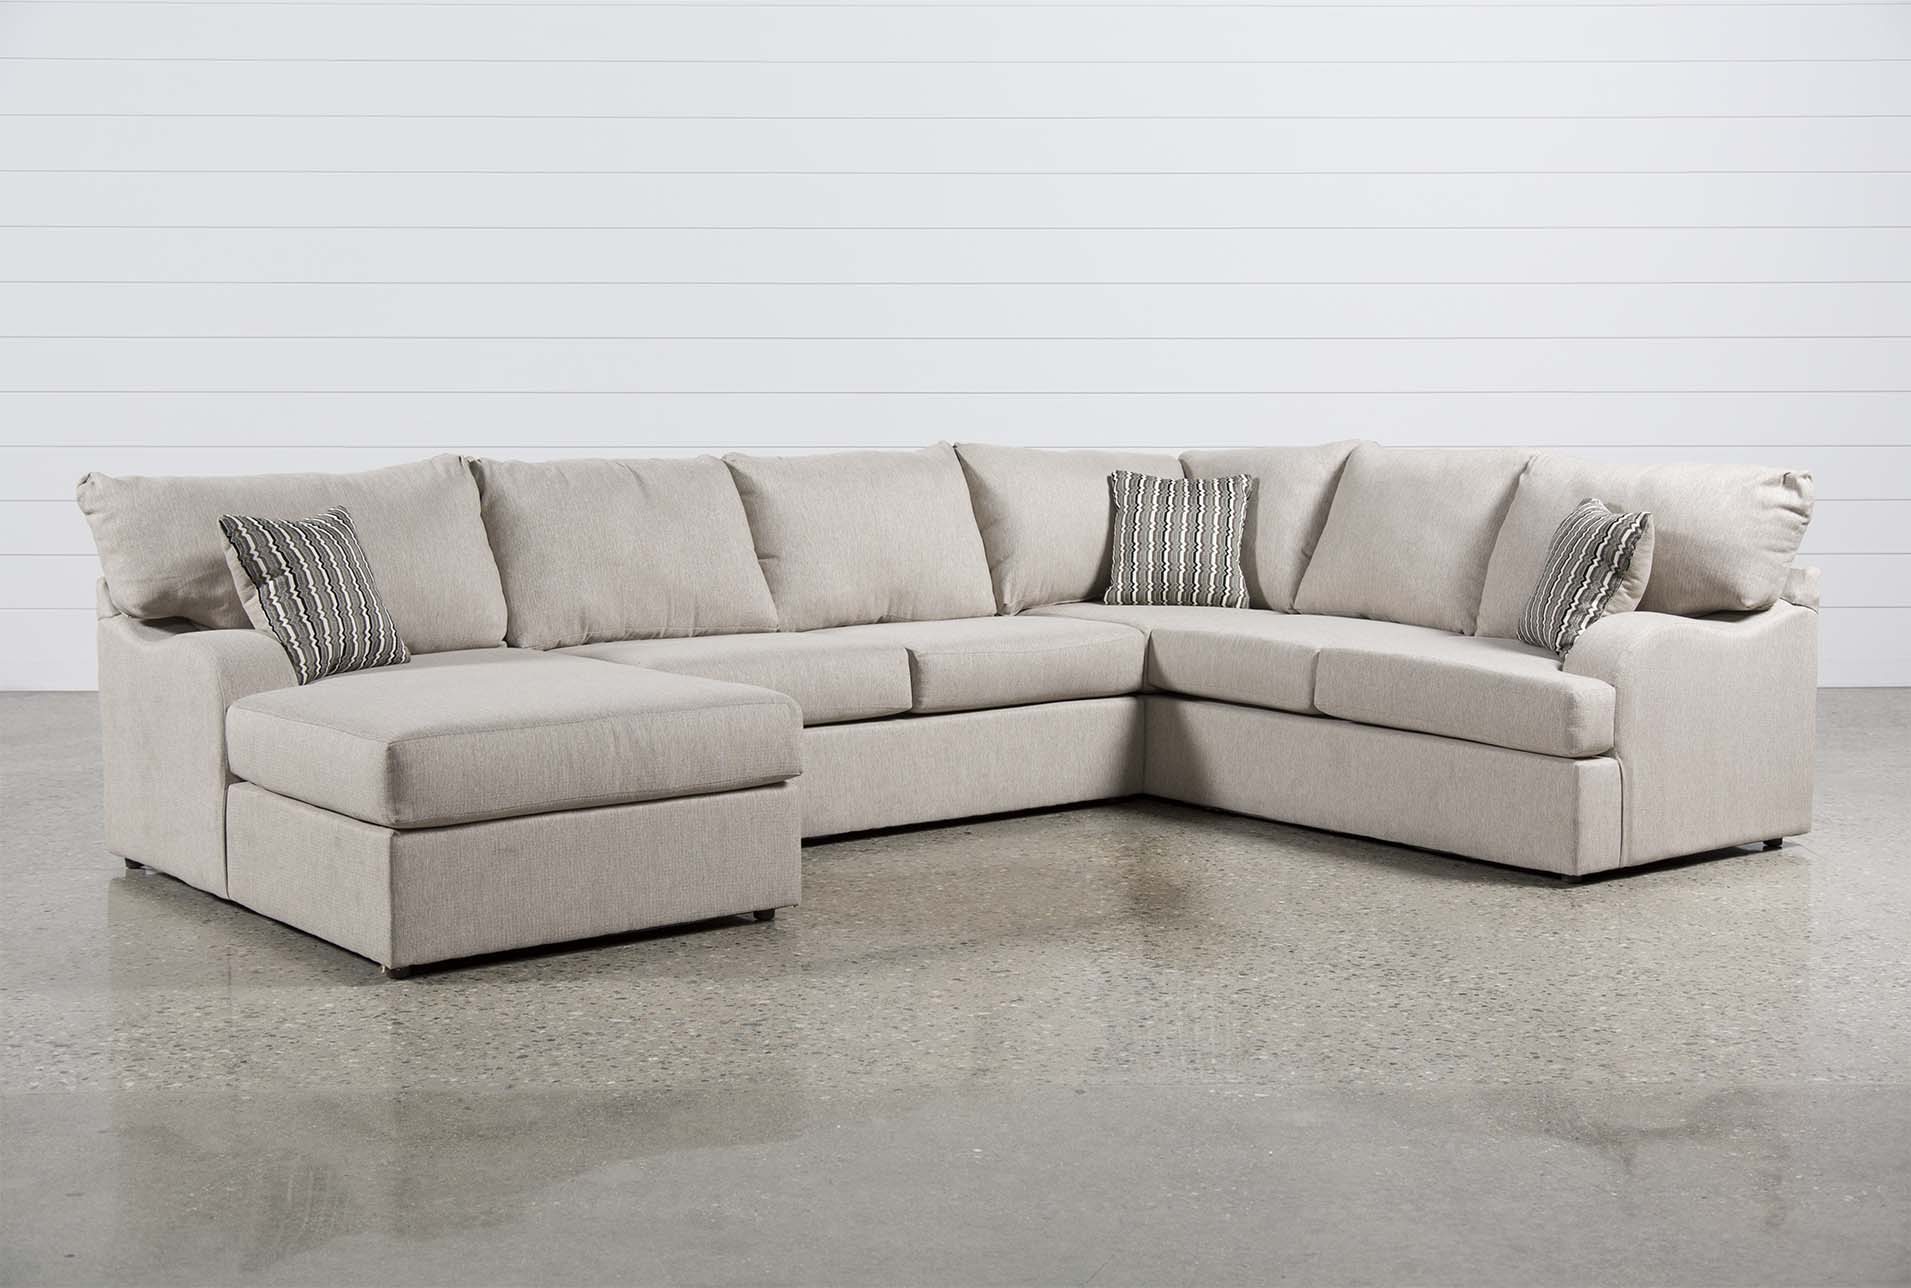 Meyer 3 Piece Sectional W/Laf Chaise